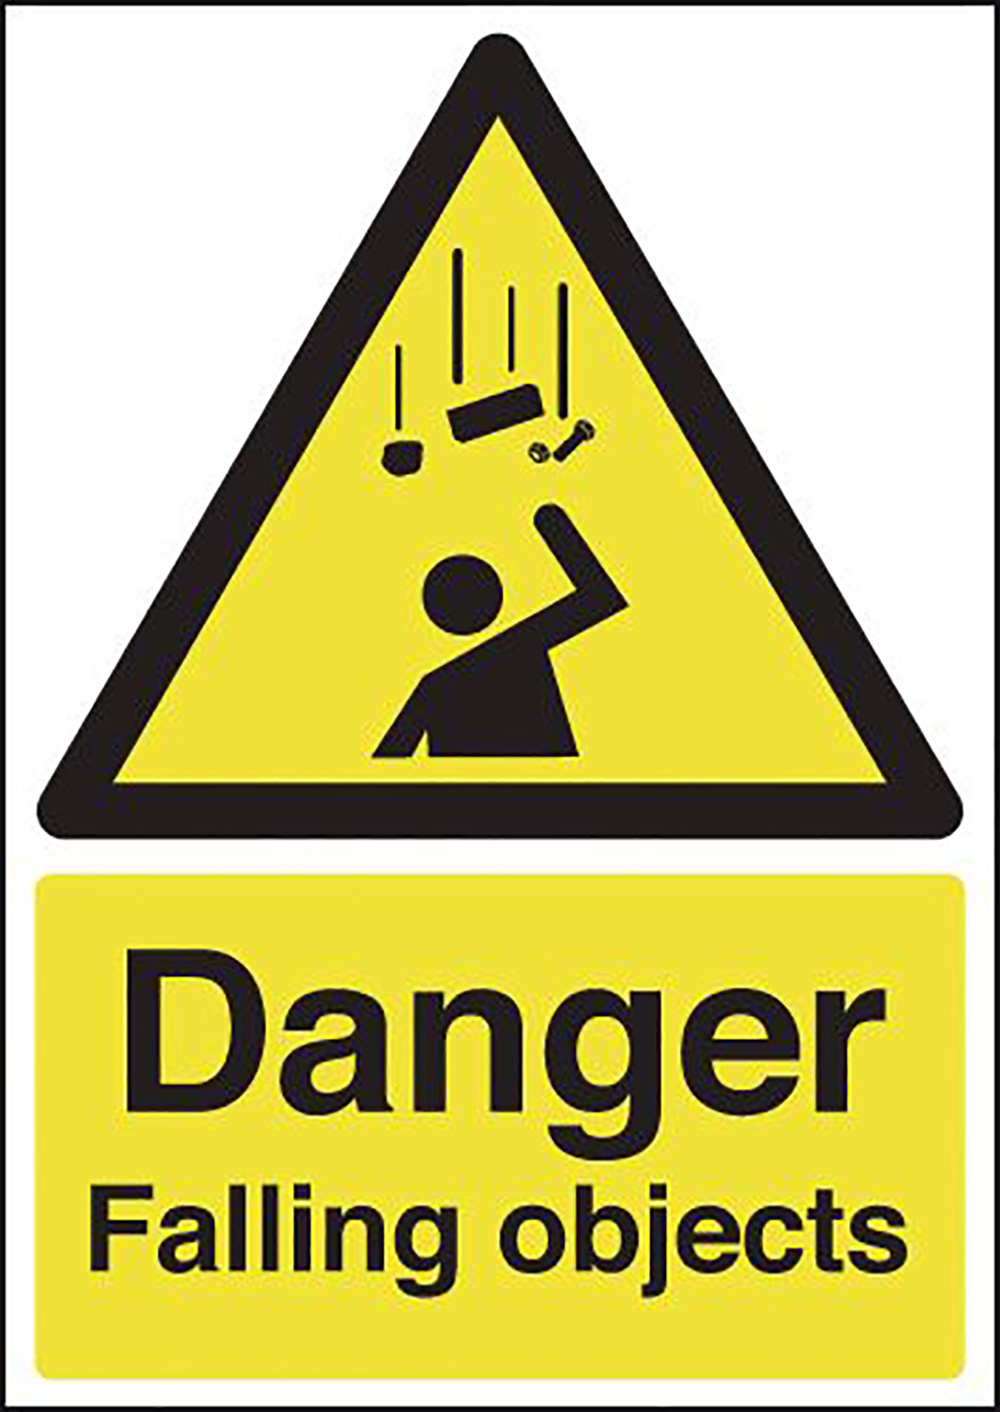 Danger Falling Objects 297x210mm 1.2mm Rigid Plastic Safety Sign